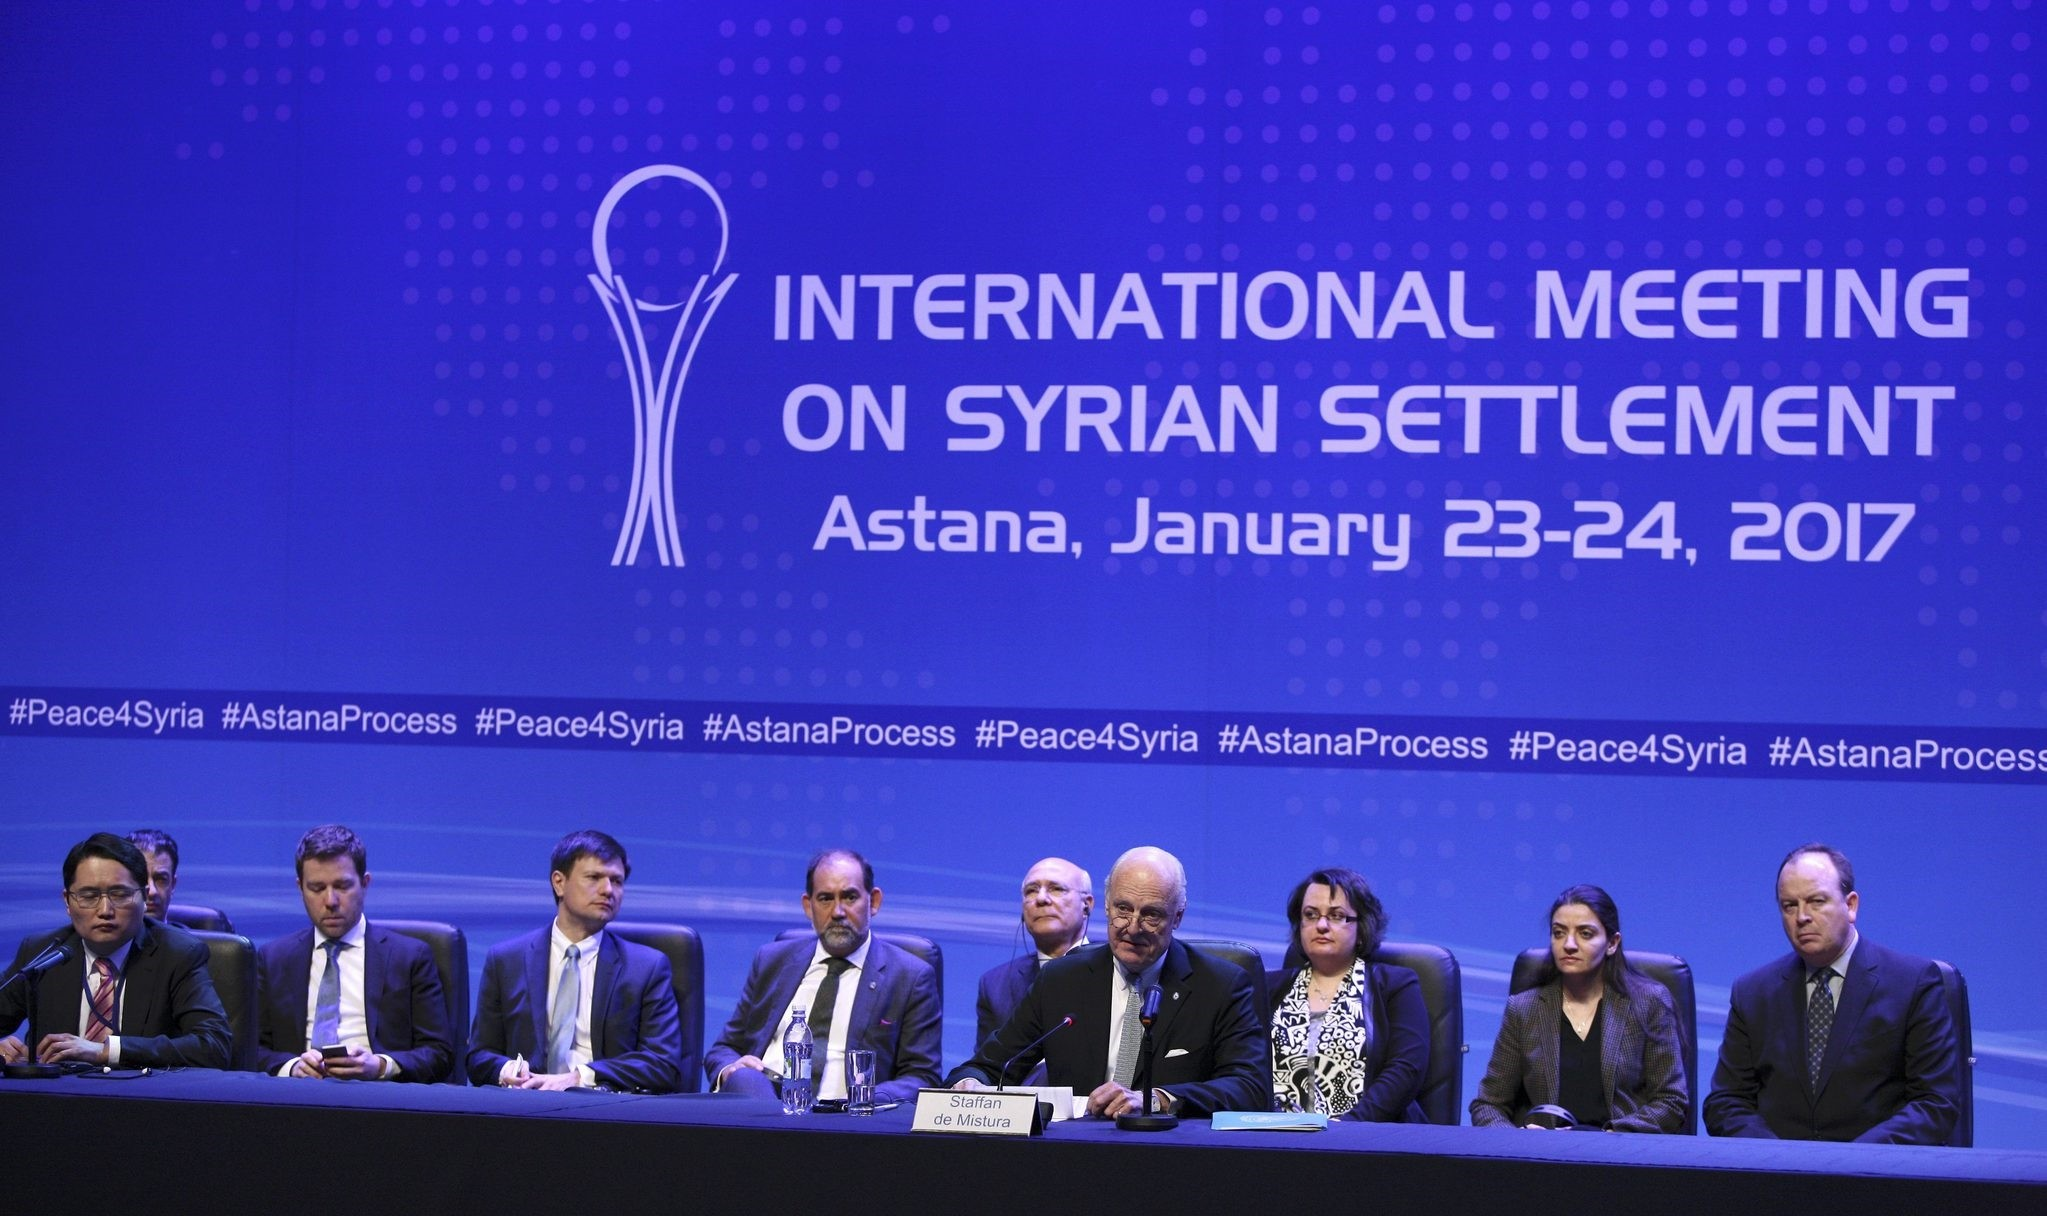 U.N. special envoy for Syria Staffan de Mistura attends a news conference following Syria peace talks in Astana, Kazakhstan January 24, 2017. (REUTERS Photo)